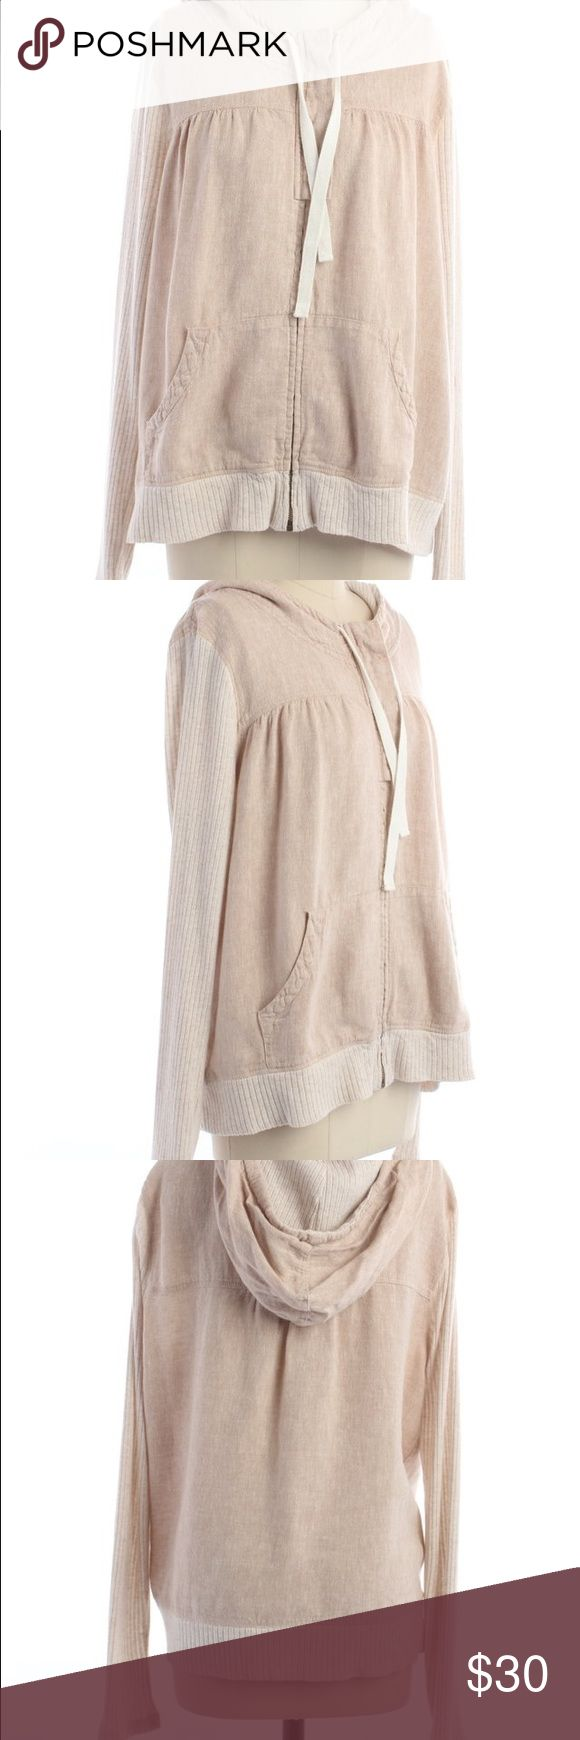 Anthropologie beige linen ribbed zip up jacket Beige linen and cotton ribbed zip up hoodie jacket. Size large. In excellent condition! Anthropologie Jackets & Coats